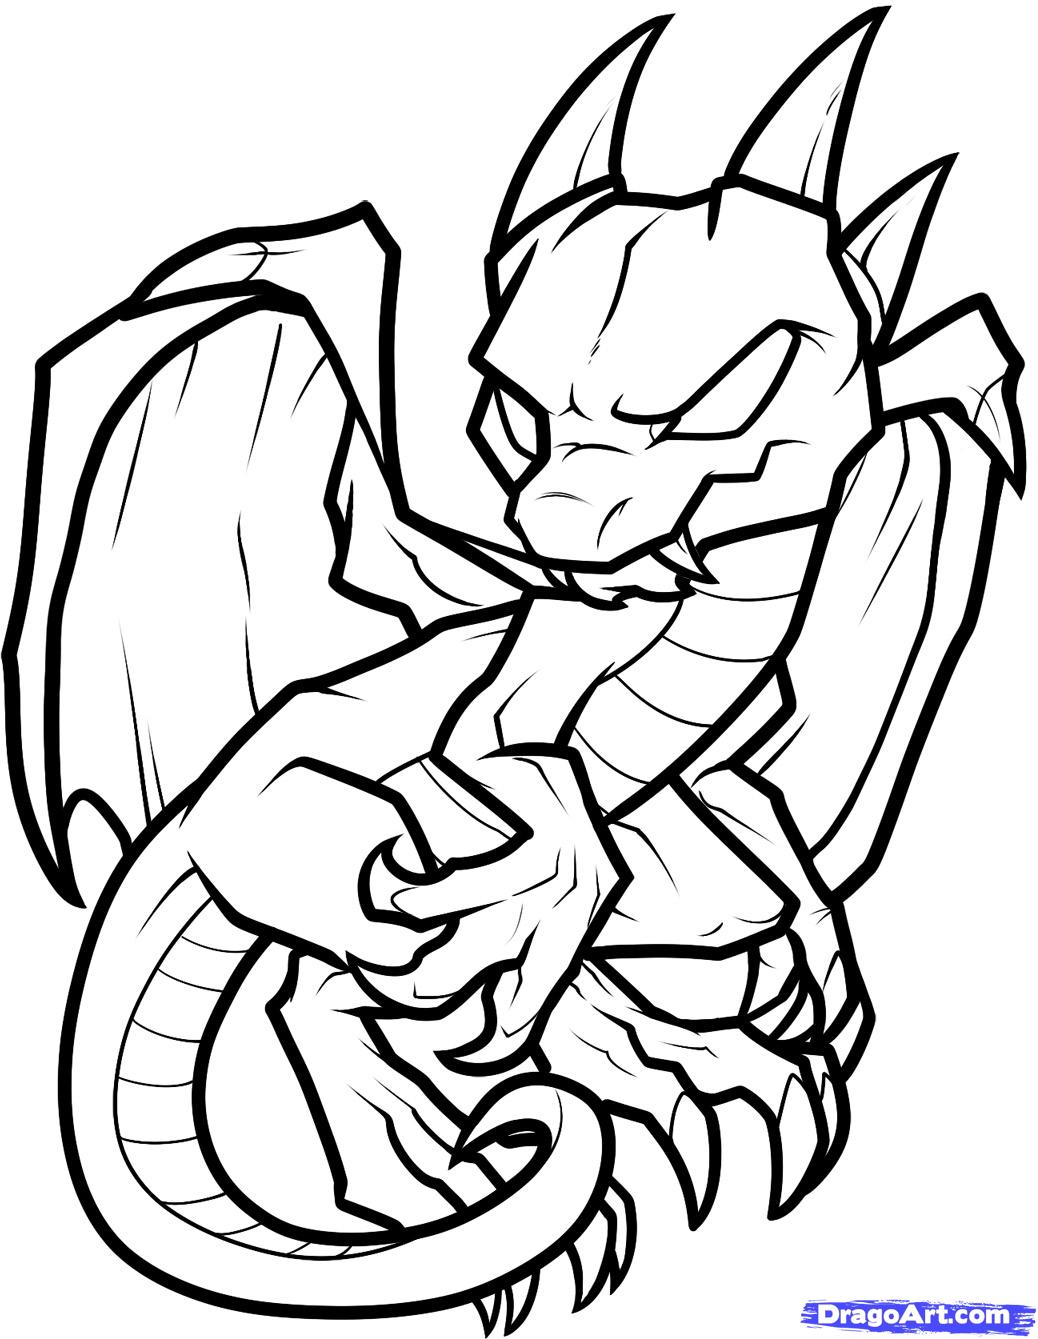 Easy Baby Dragon Drawings For Kids : dragon, drawings, DRAGON, DRAWINGS,, Download, Clipart, Library